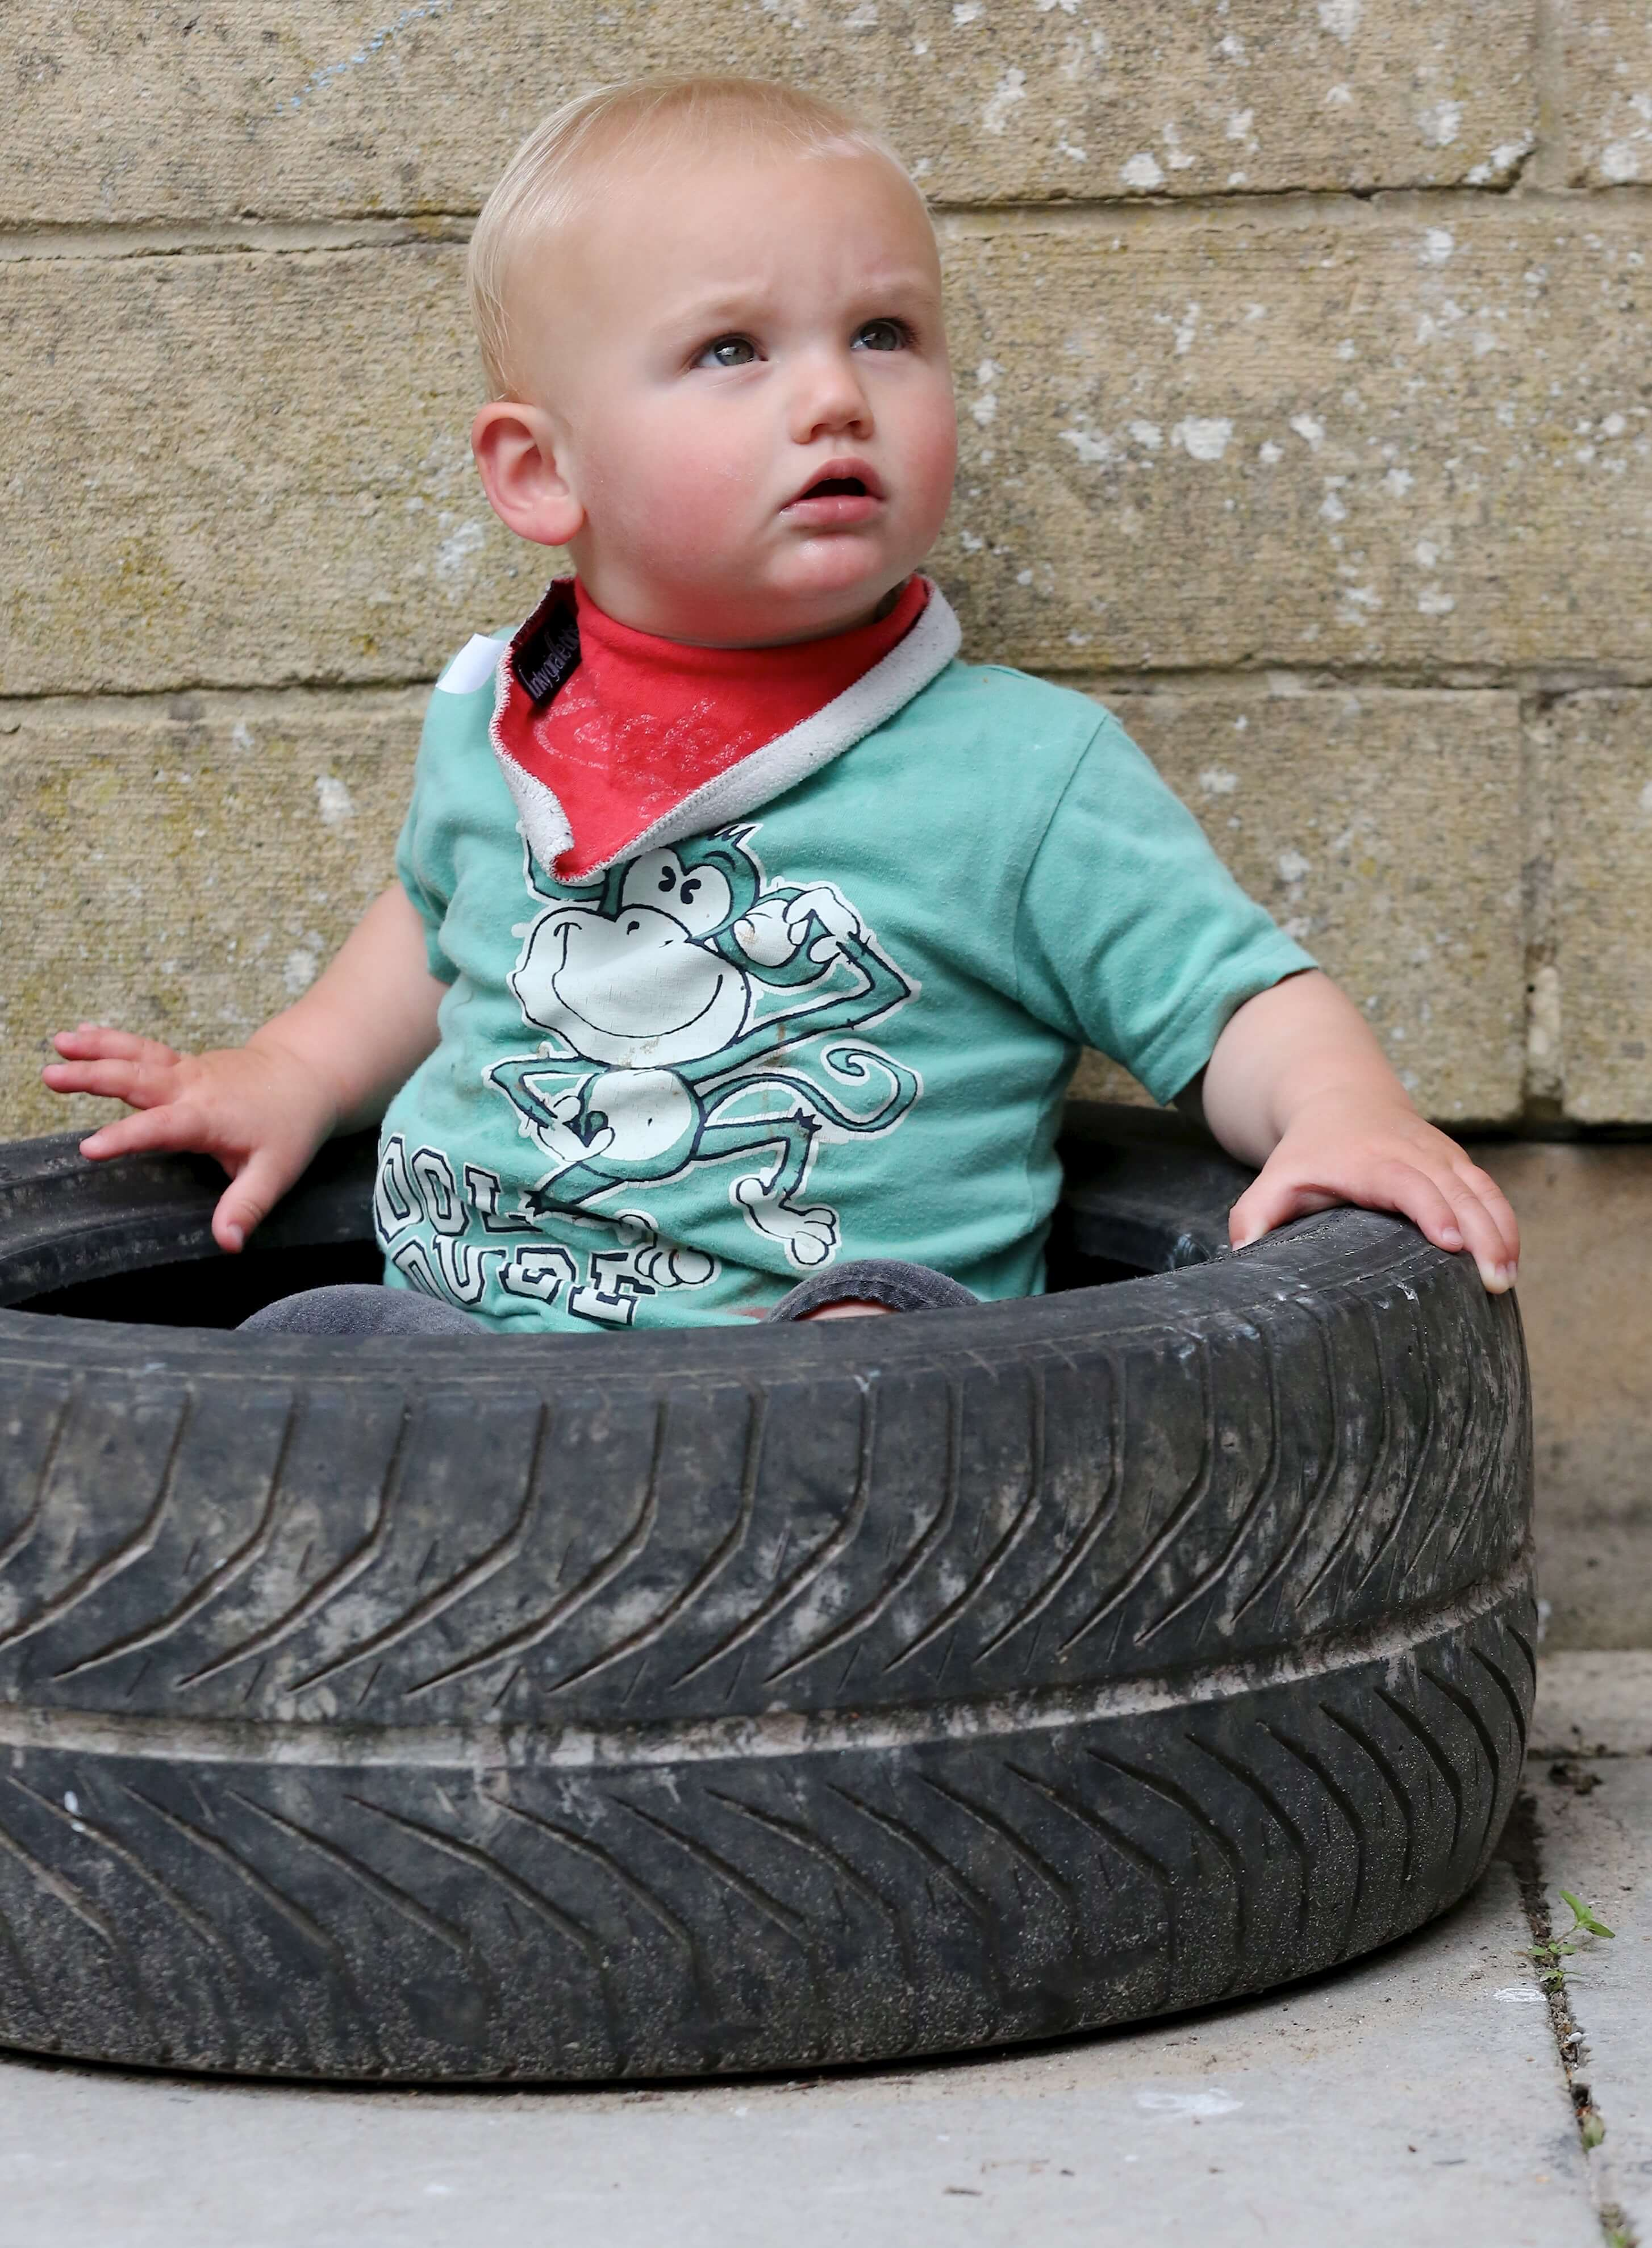 Little Willows Nursery member playing in a tyre